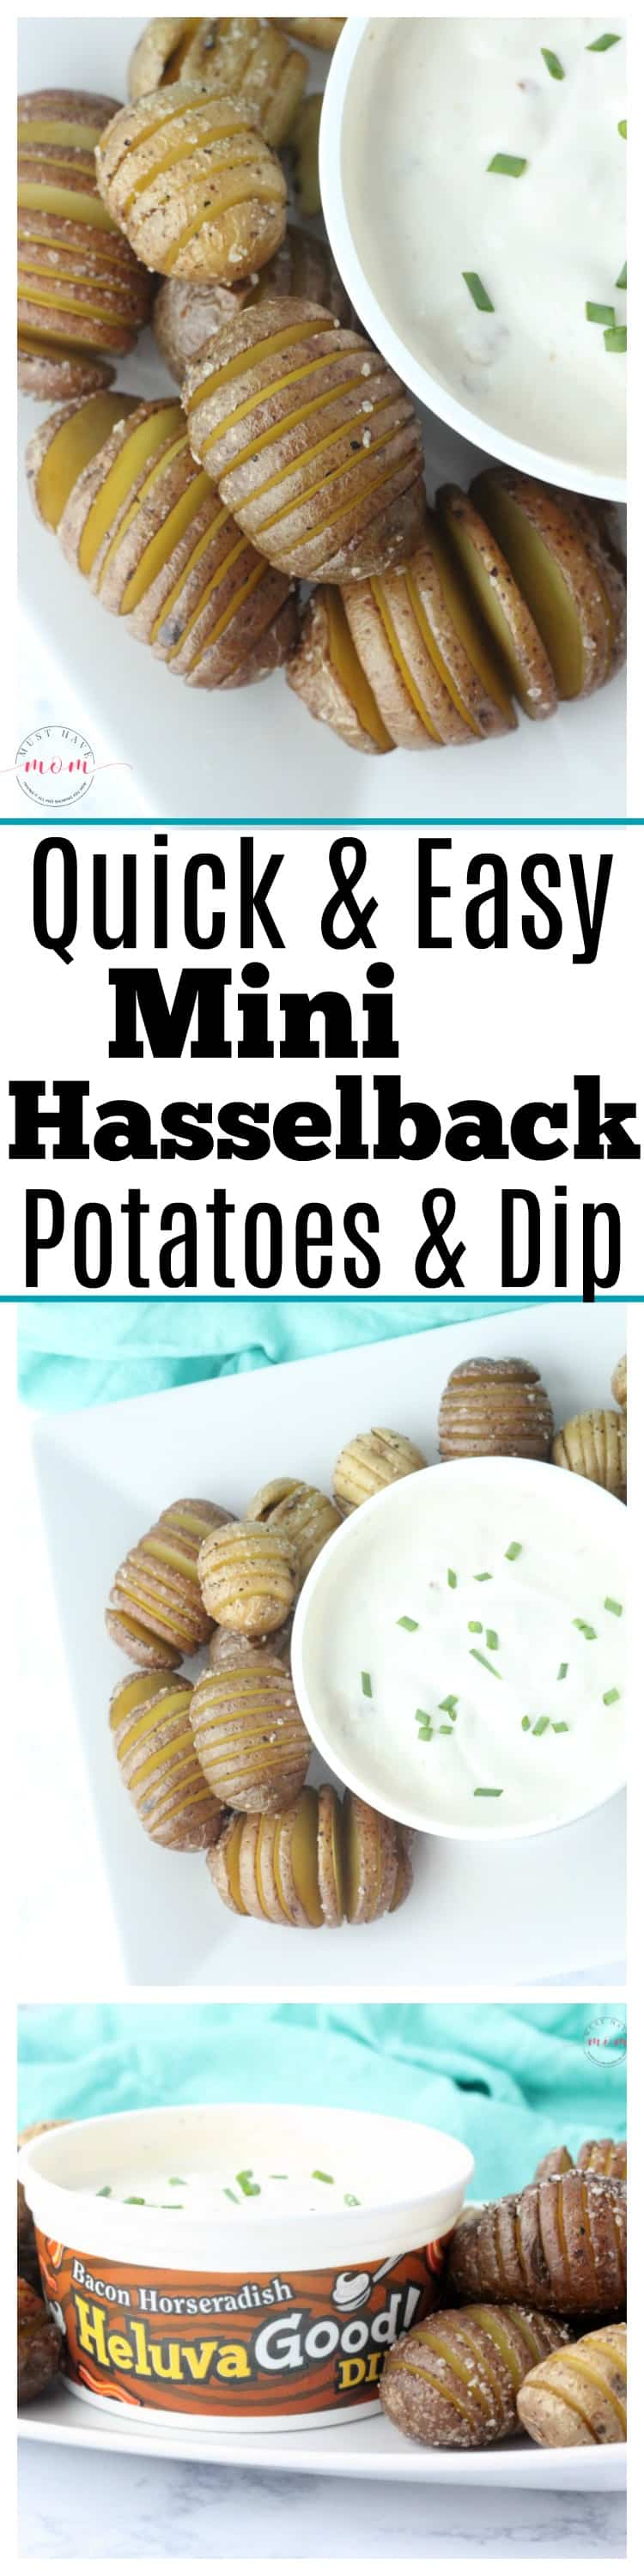 Mini hasselback potatoes recipe with bacon horseradish dip. Great party food idea or side dish + it's quick and easy.